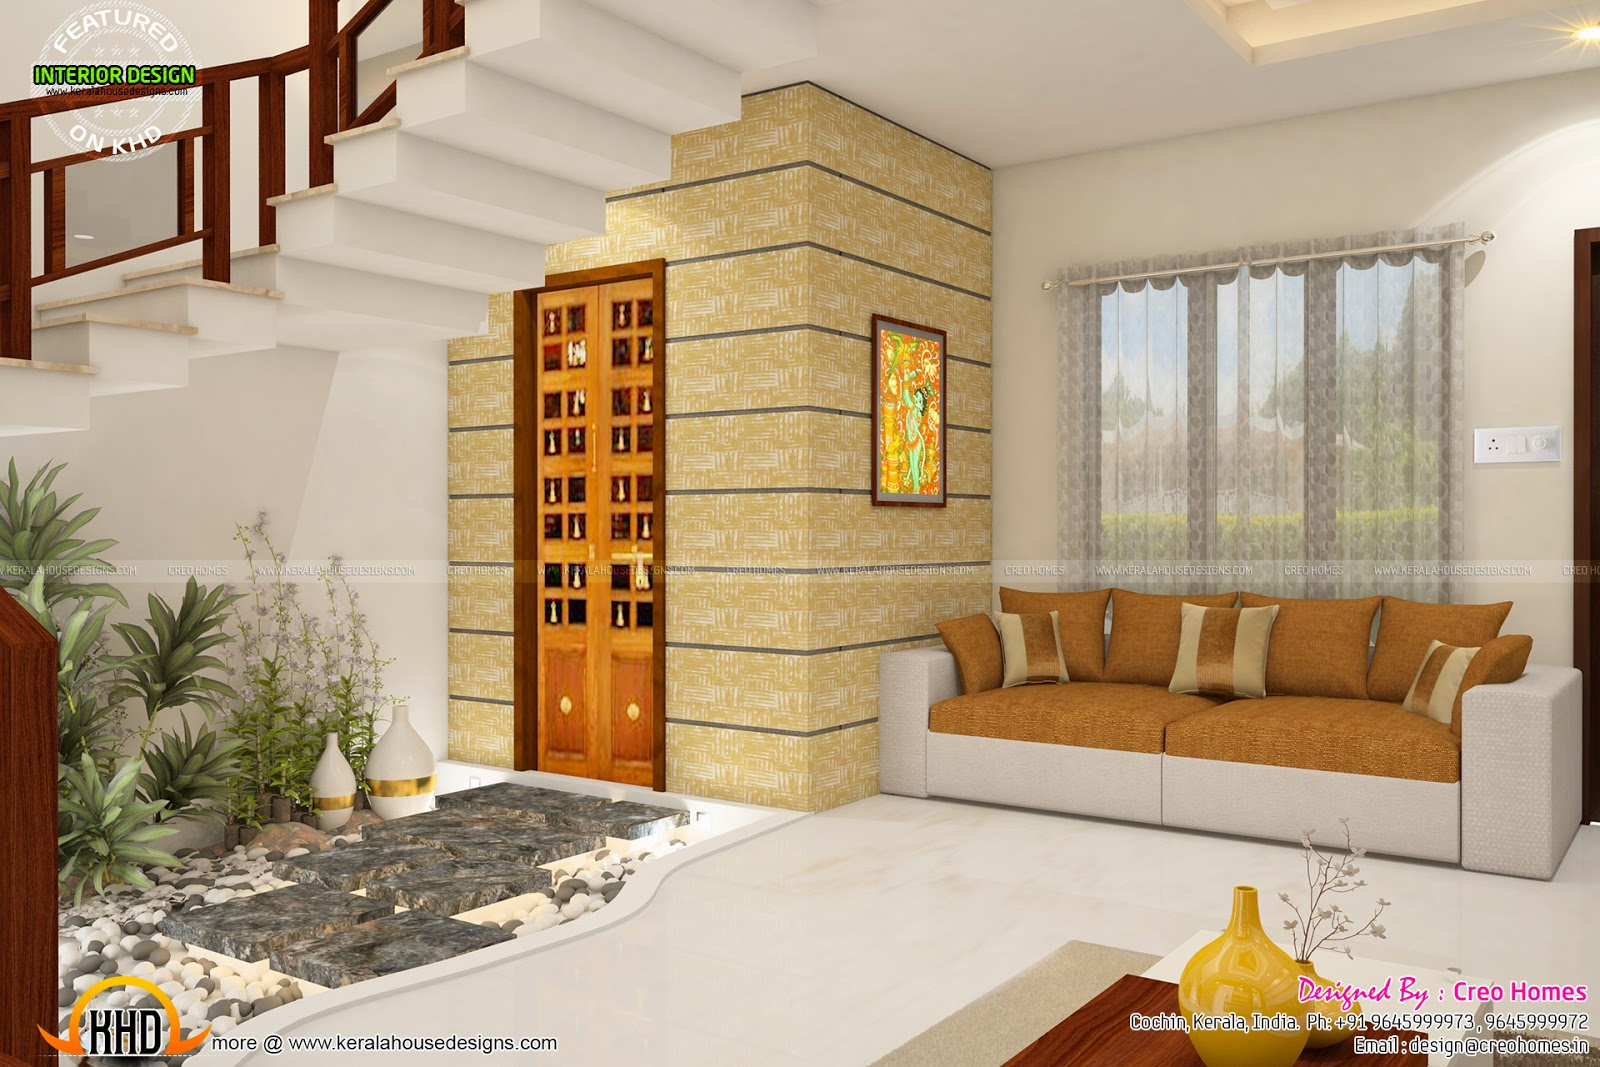 Total home interior solutions by creo homes kerala home for Indoor design home